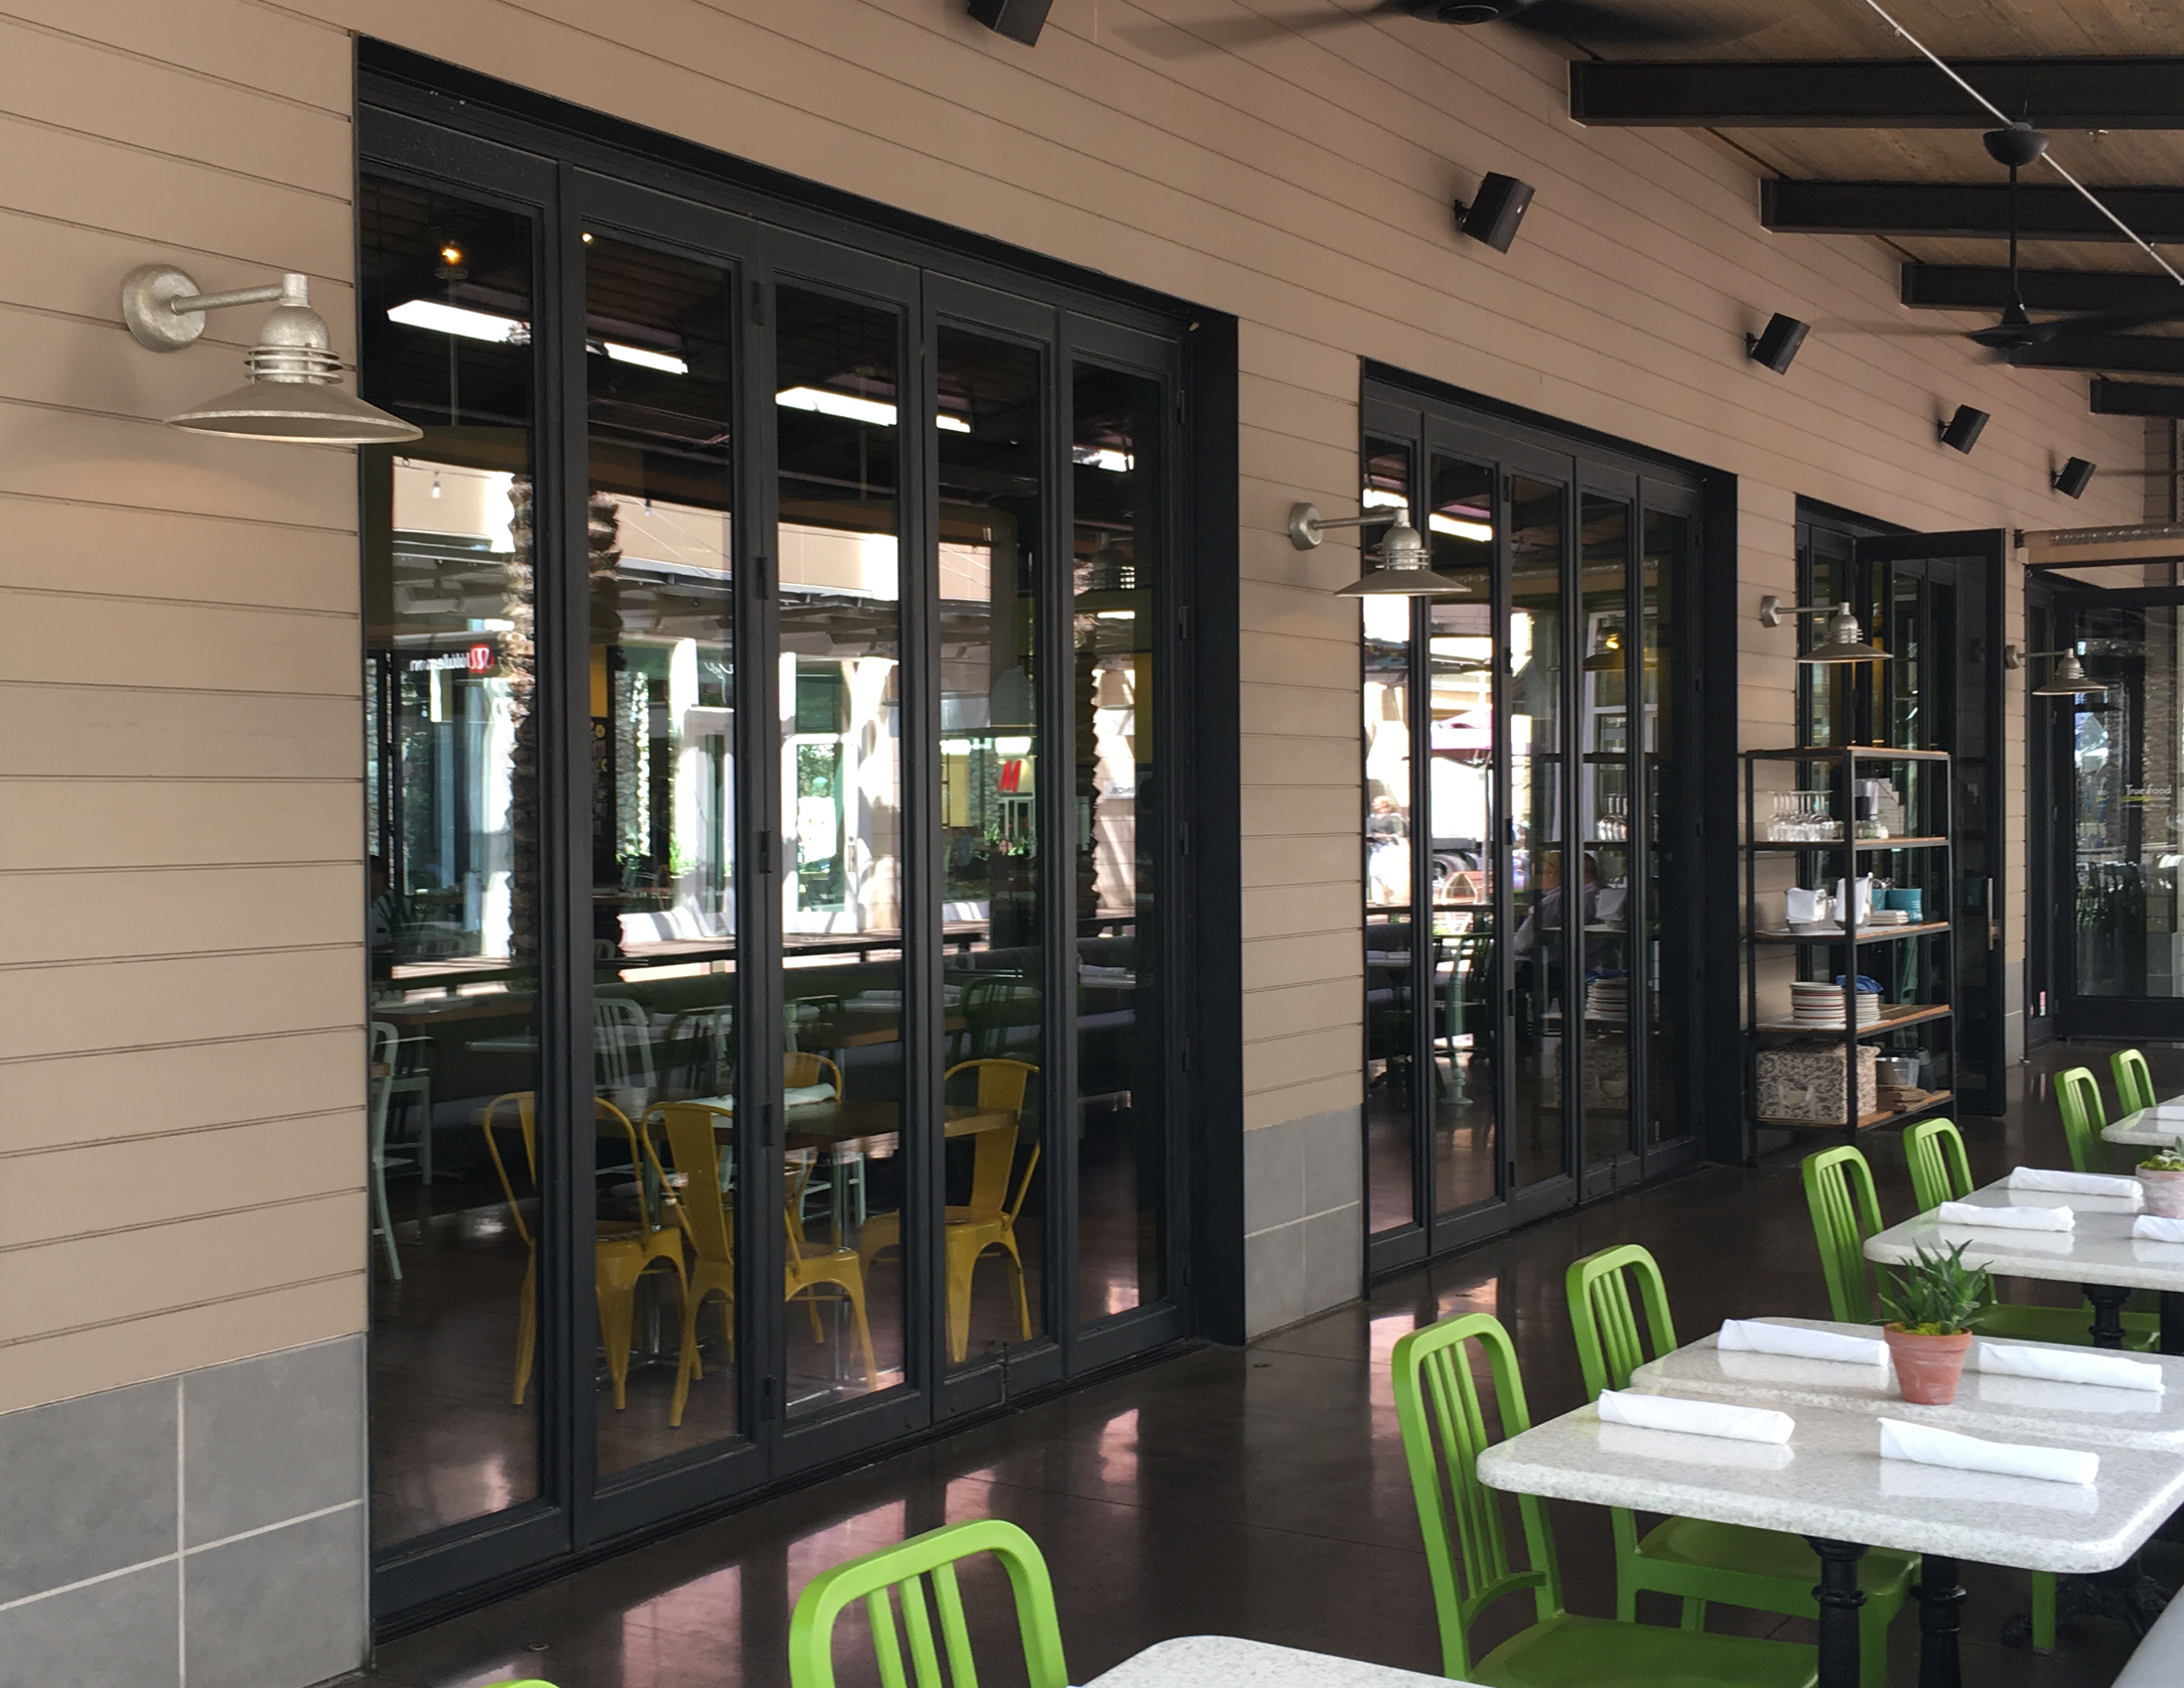 COMMERCIAL IRON AND GLASS DOOR 4